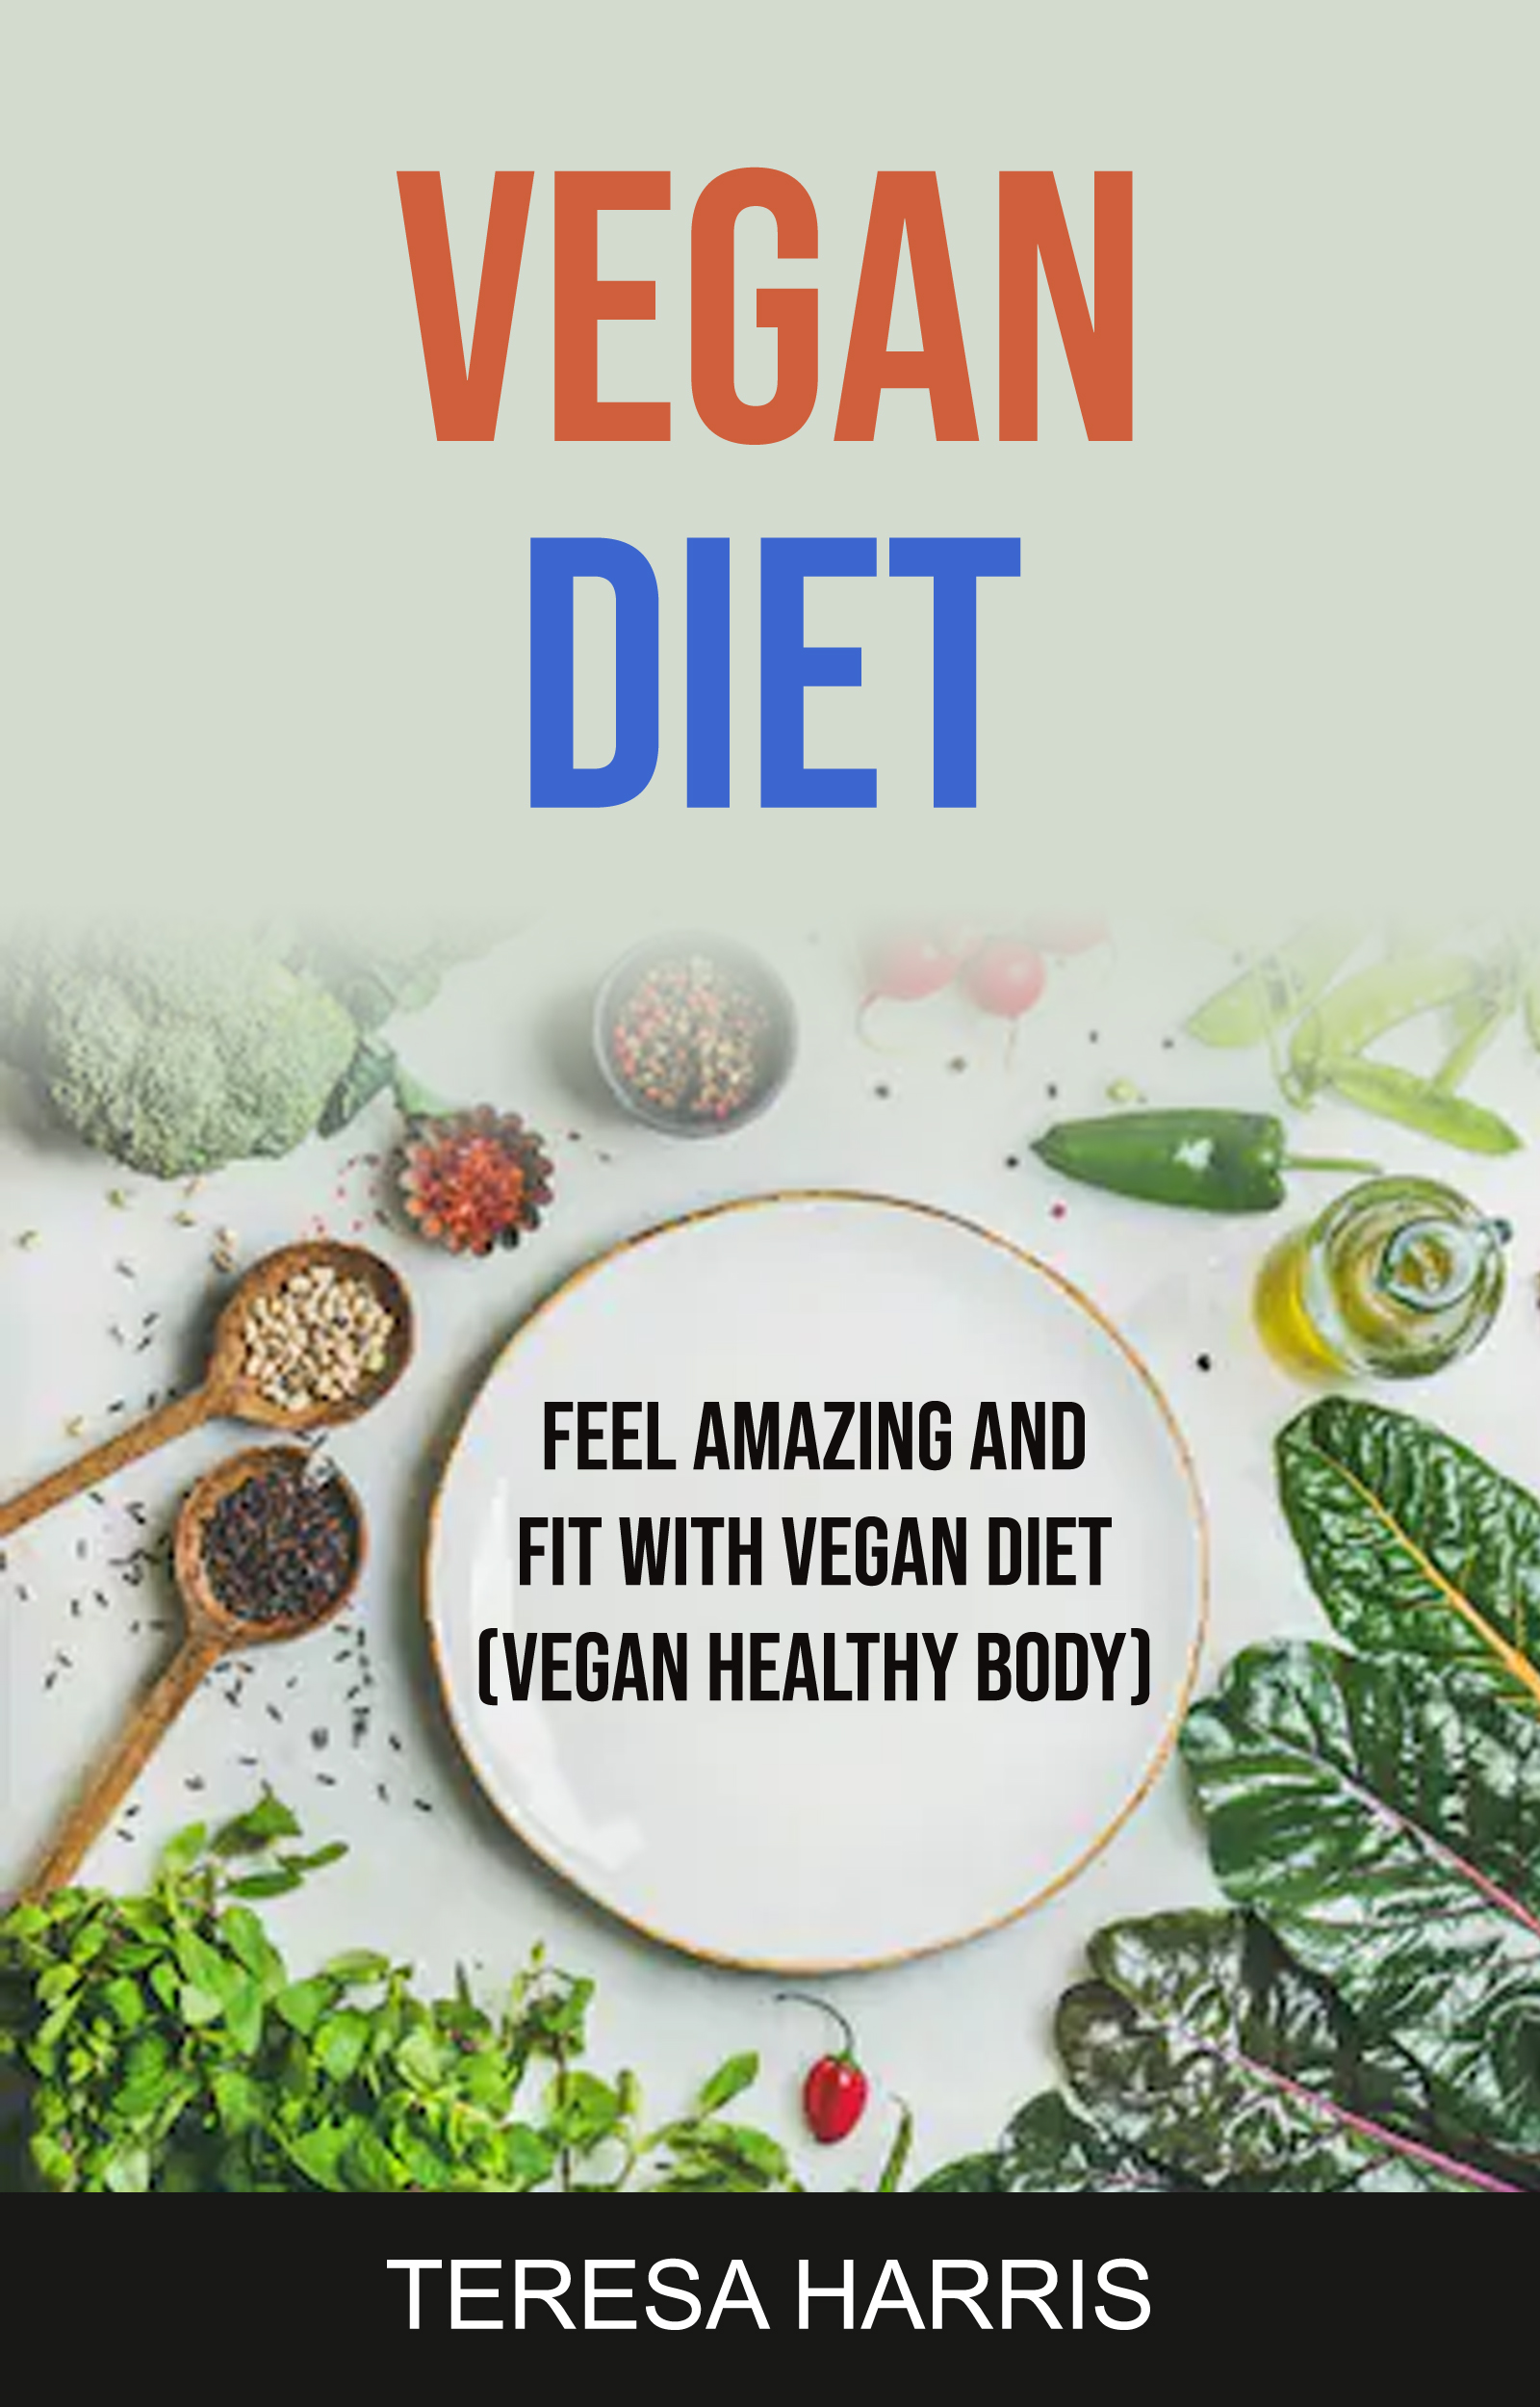 Vegan diet: feel amazing and fit with vegan diet (vegan healthy body)